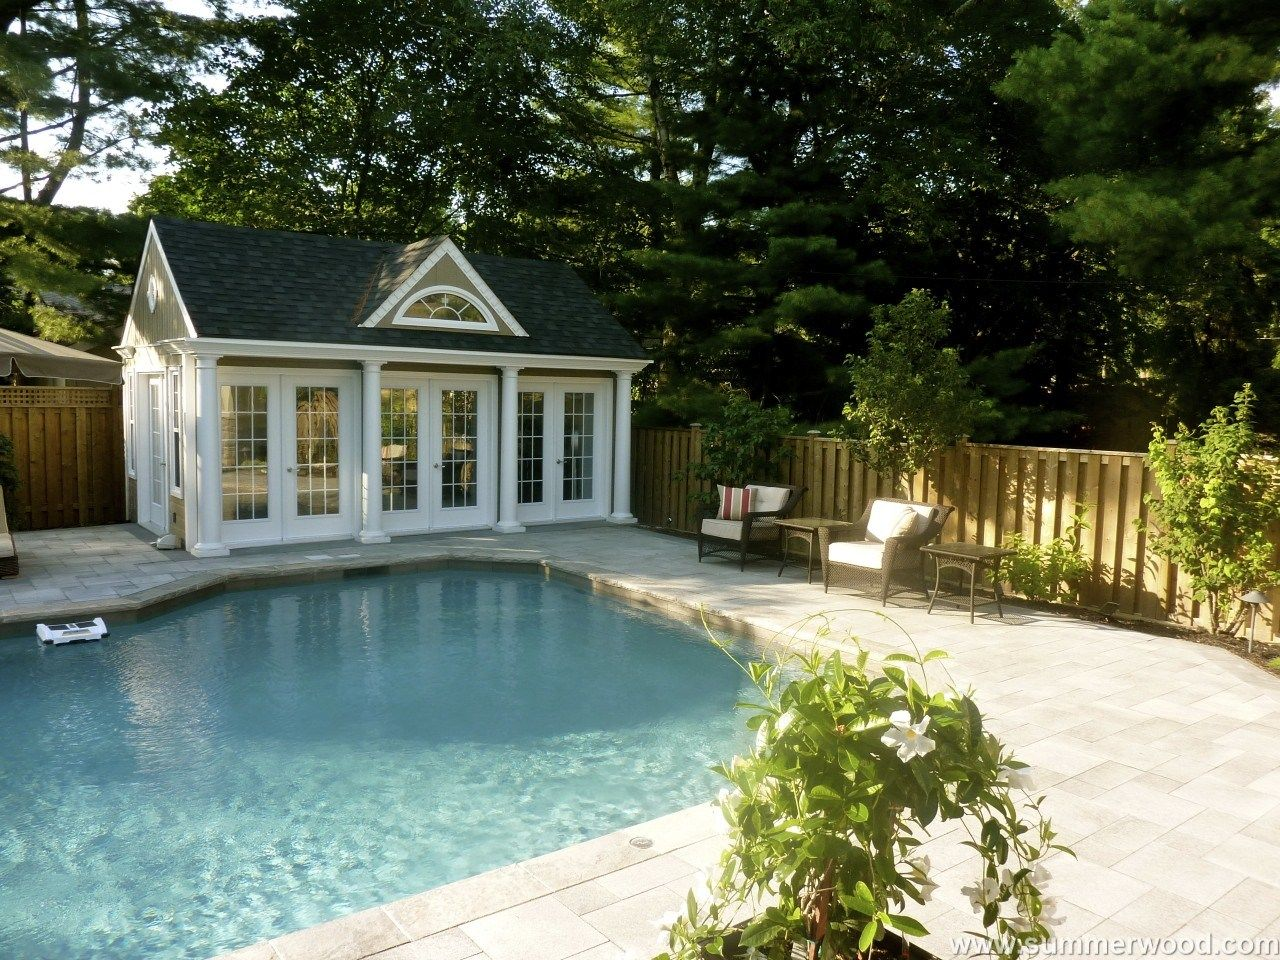 This Exquisite Windsor Poolhouse Really Makes Your Backyard Stand Out Pool Houses Pool House Interiors Pool House Plans